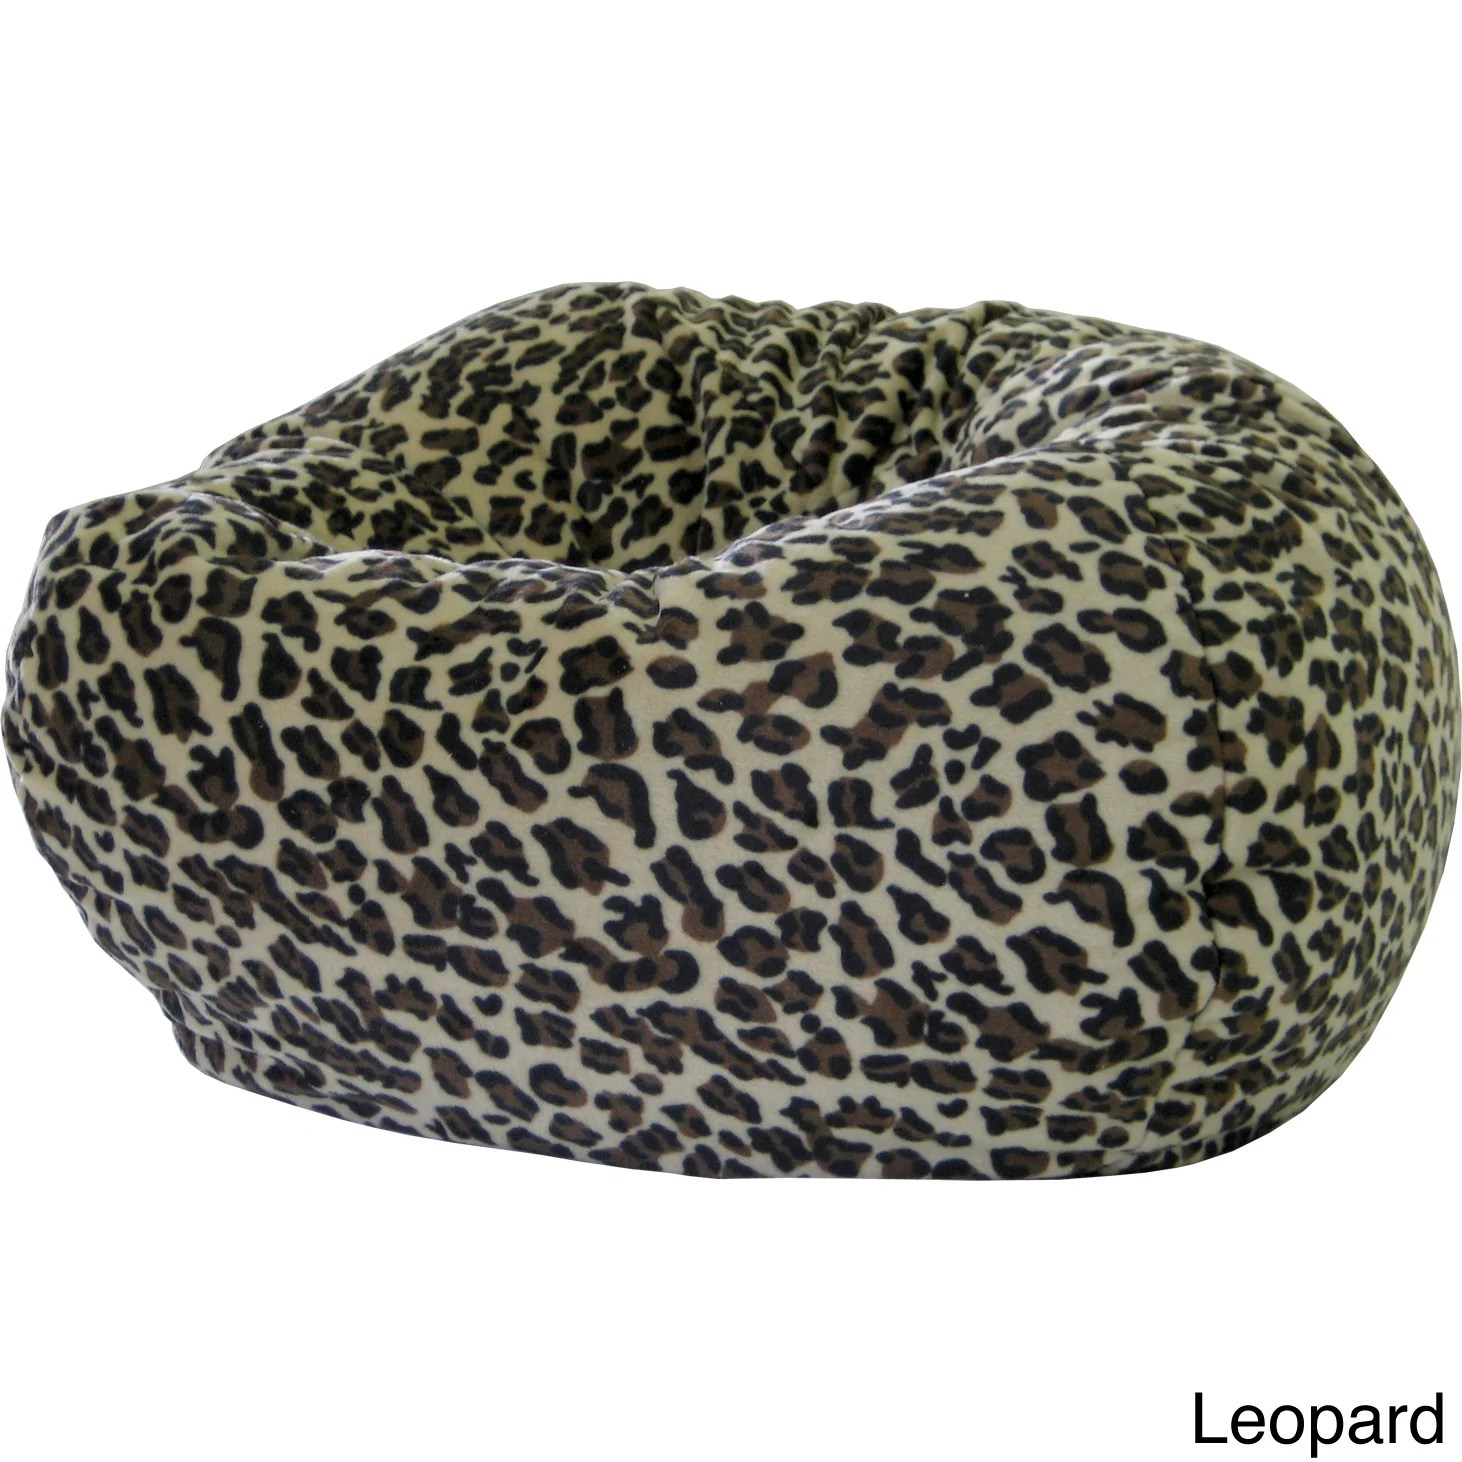 cheetah print bean bag chair gray lounge shop xxl safari micro fiber suede animal on sale free shipping today overstock com 8176879